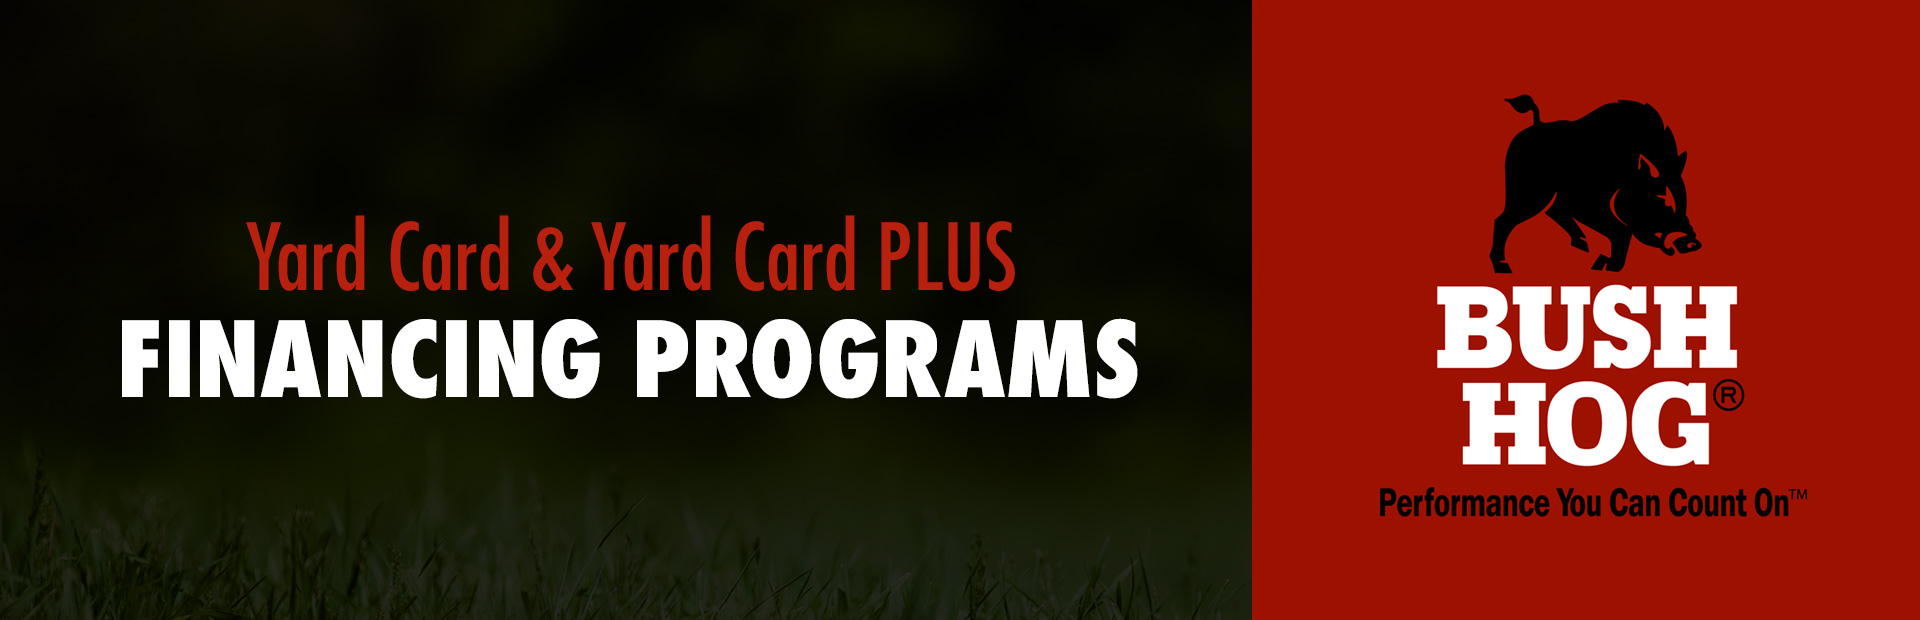 Bush Hog: Yard Card and Yard Card PLUS Financing Programs